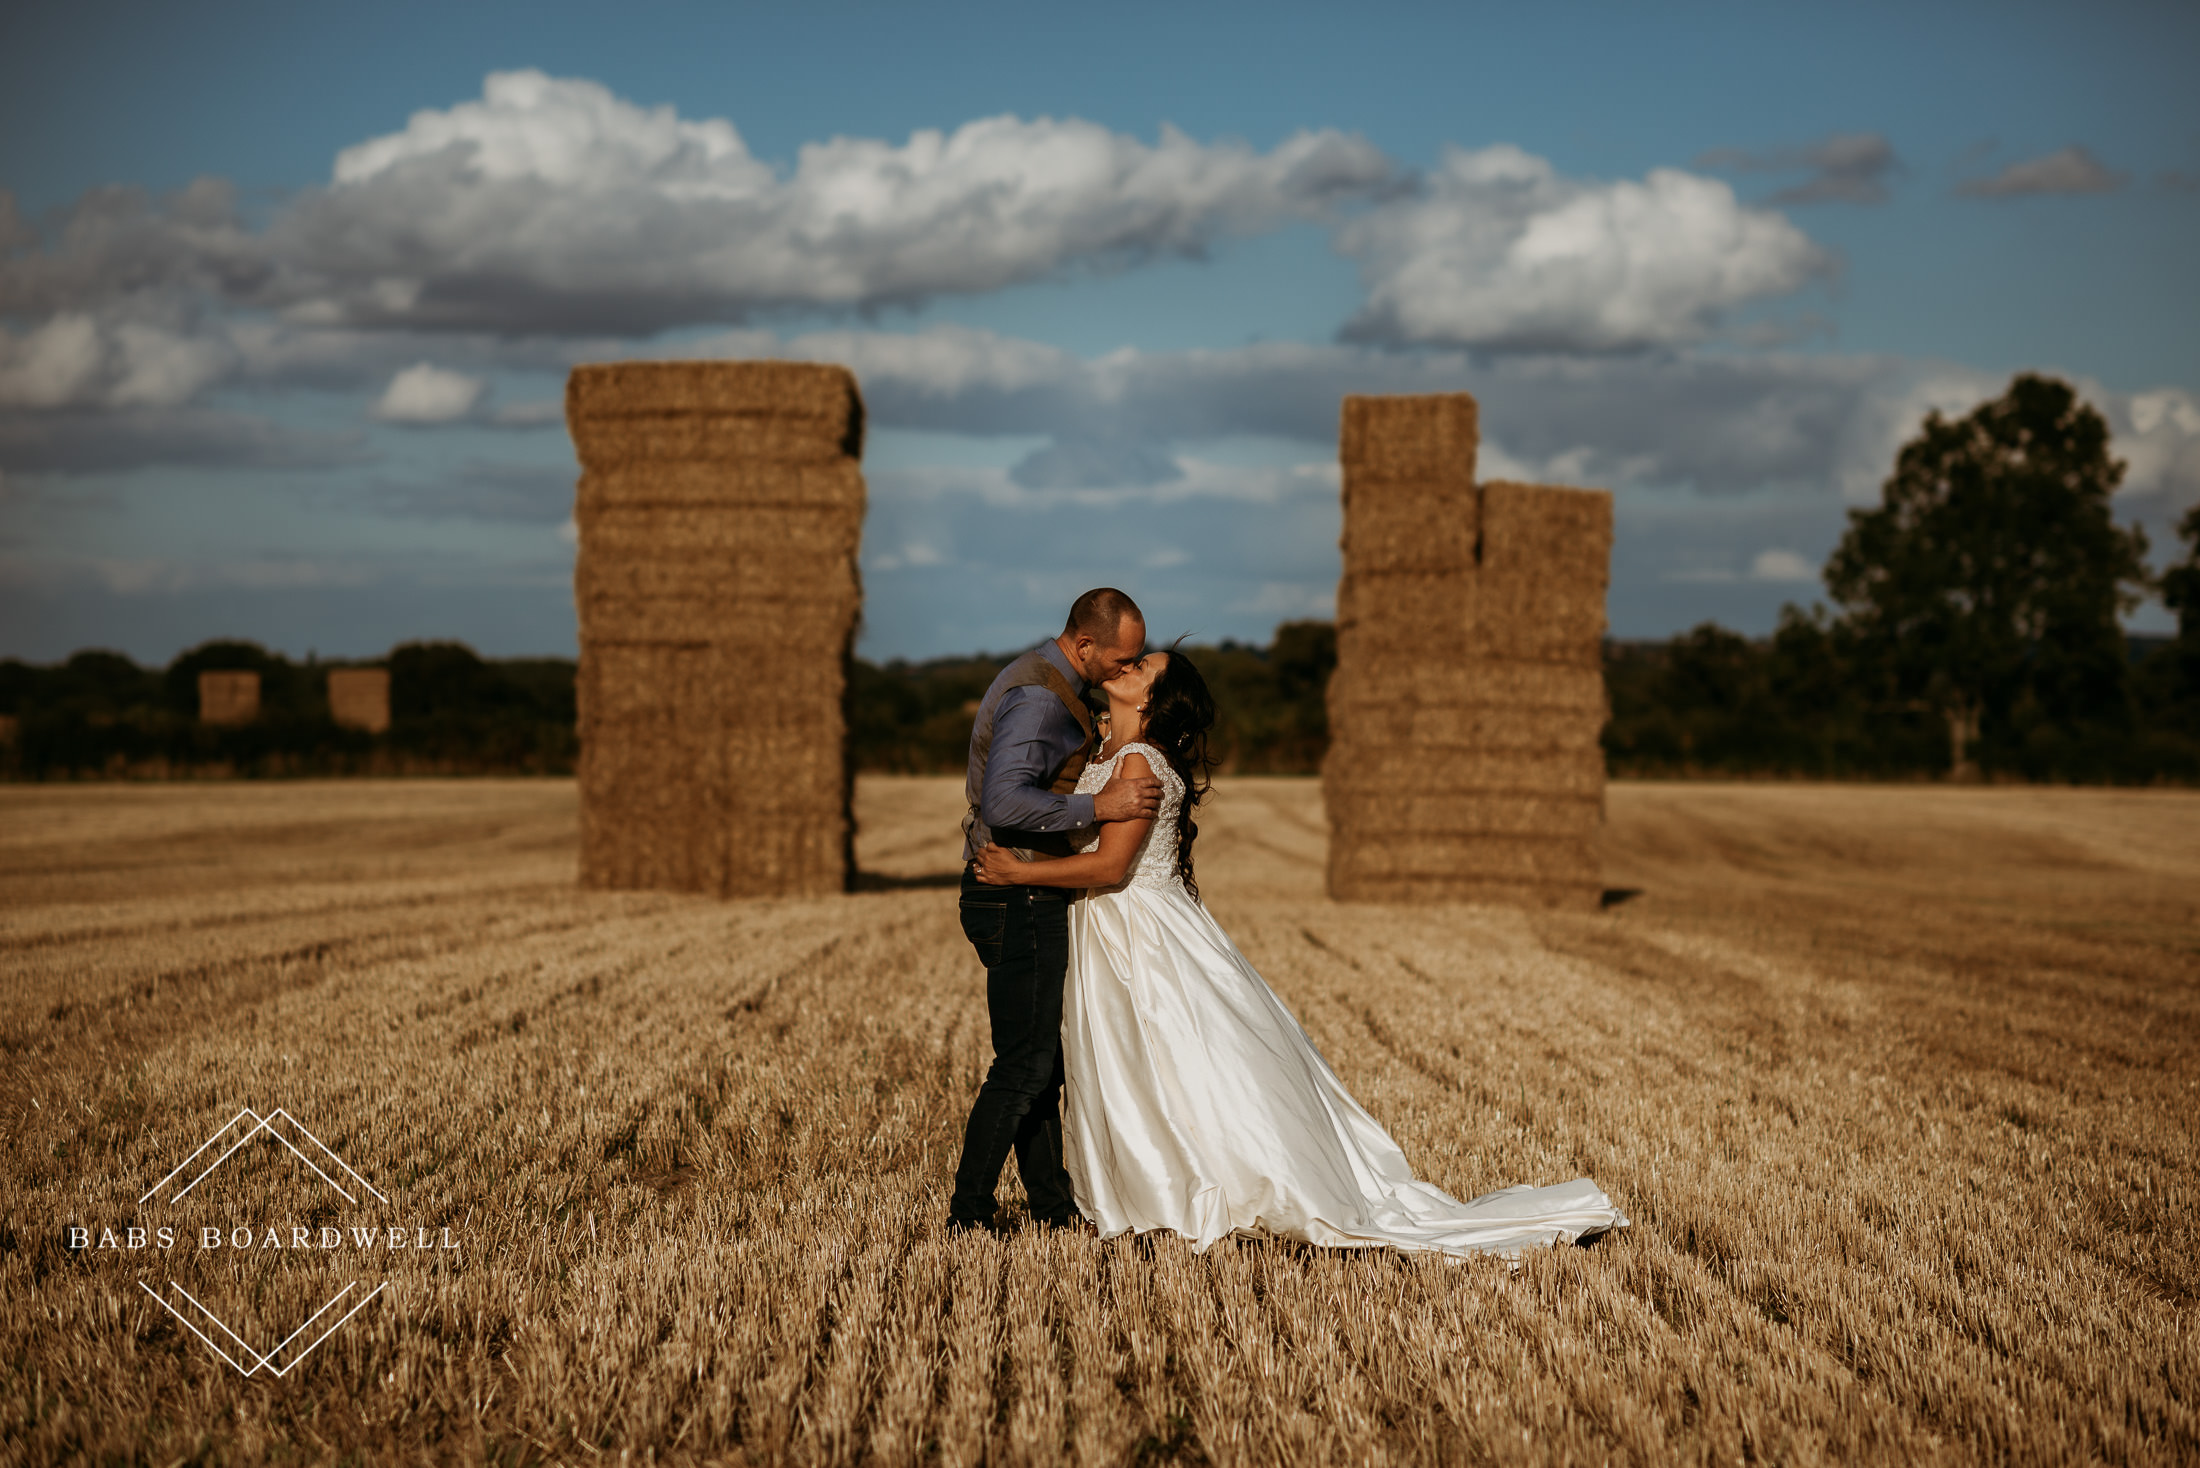 How to nail epic outdoor couple portraits on your wedding day